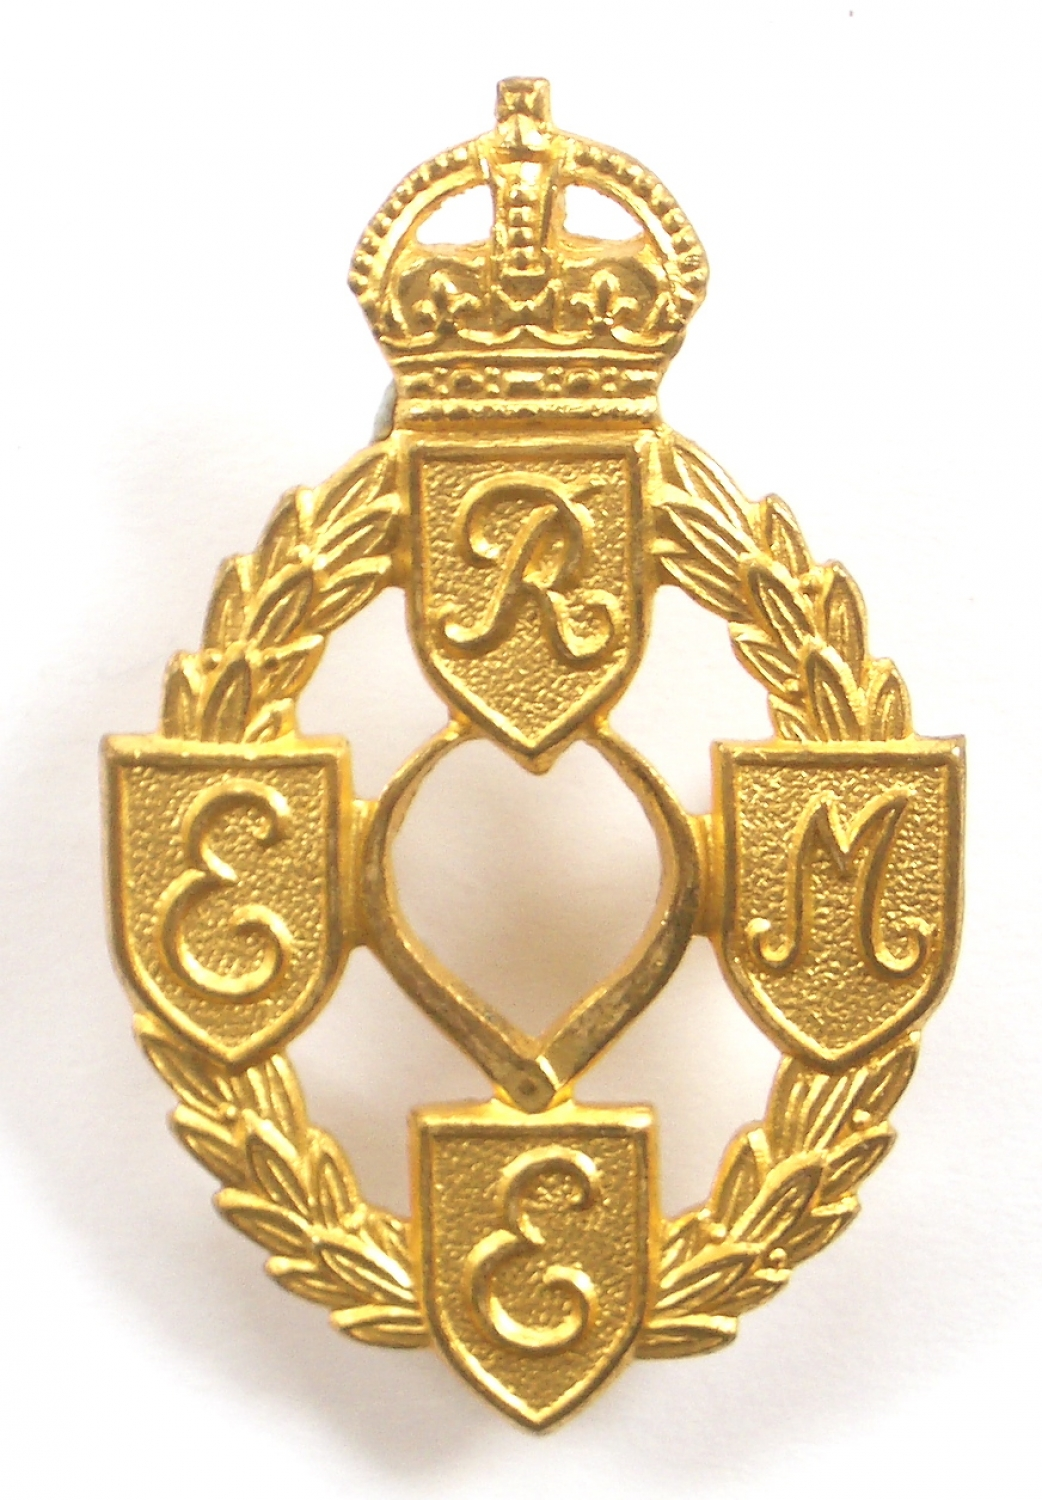 REME WW2 gilt Officer cap badge